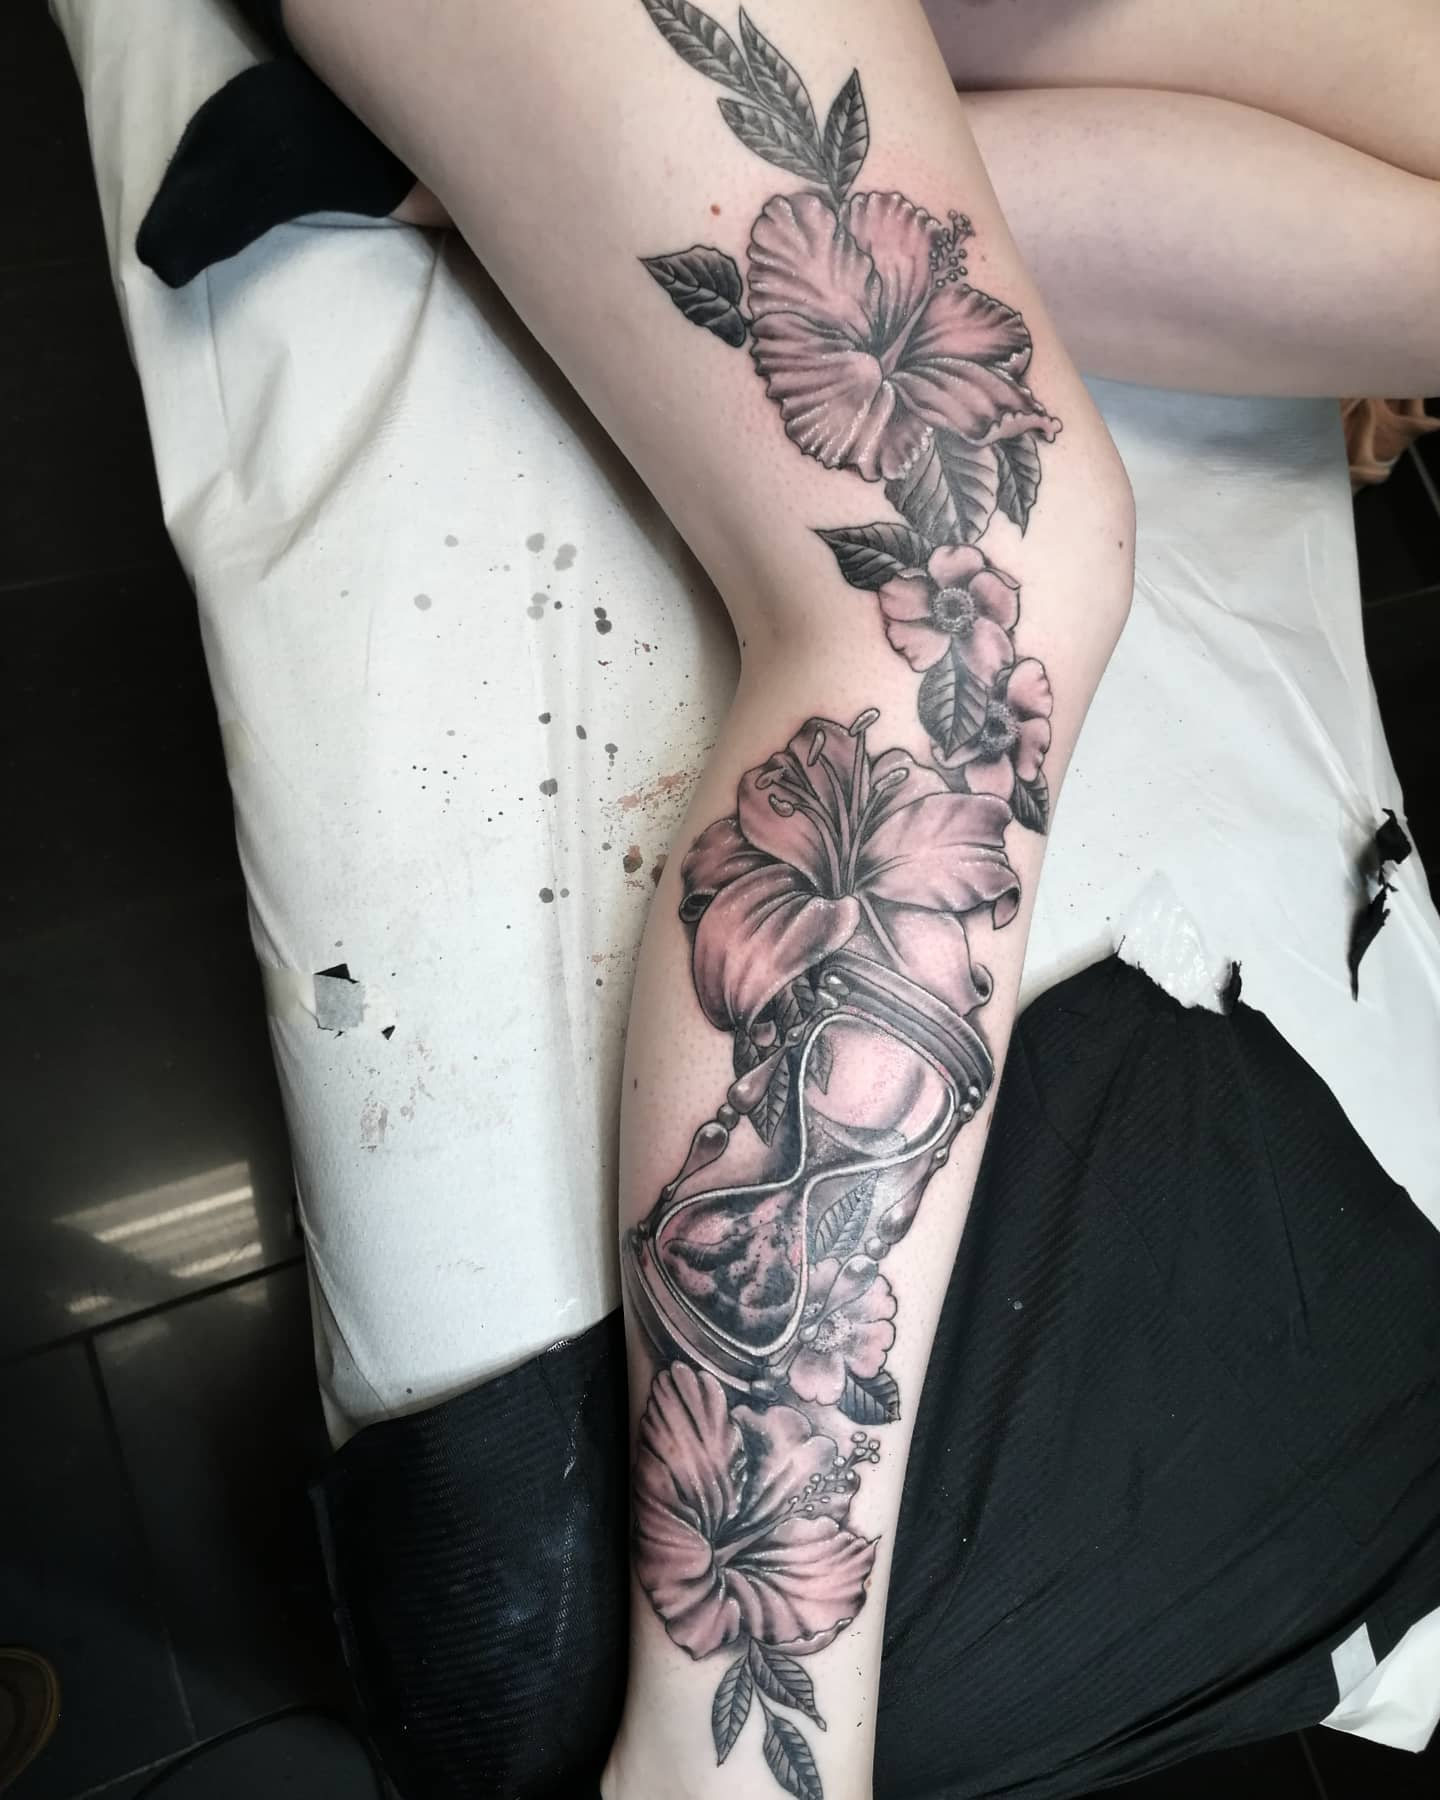 Normans Tattoo and Art Gallery - Criste Duisburg